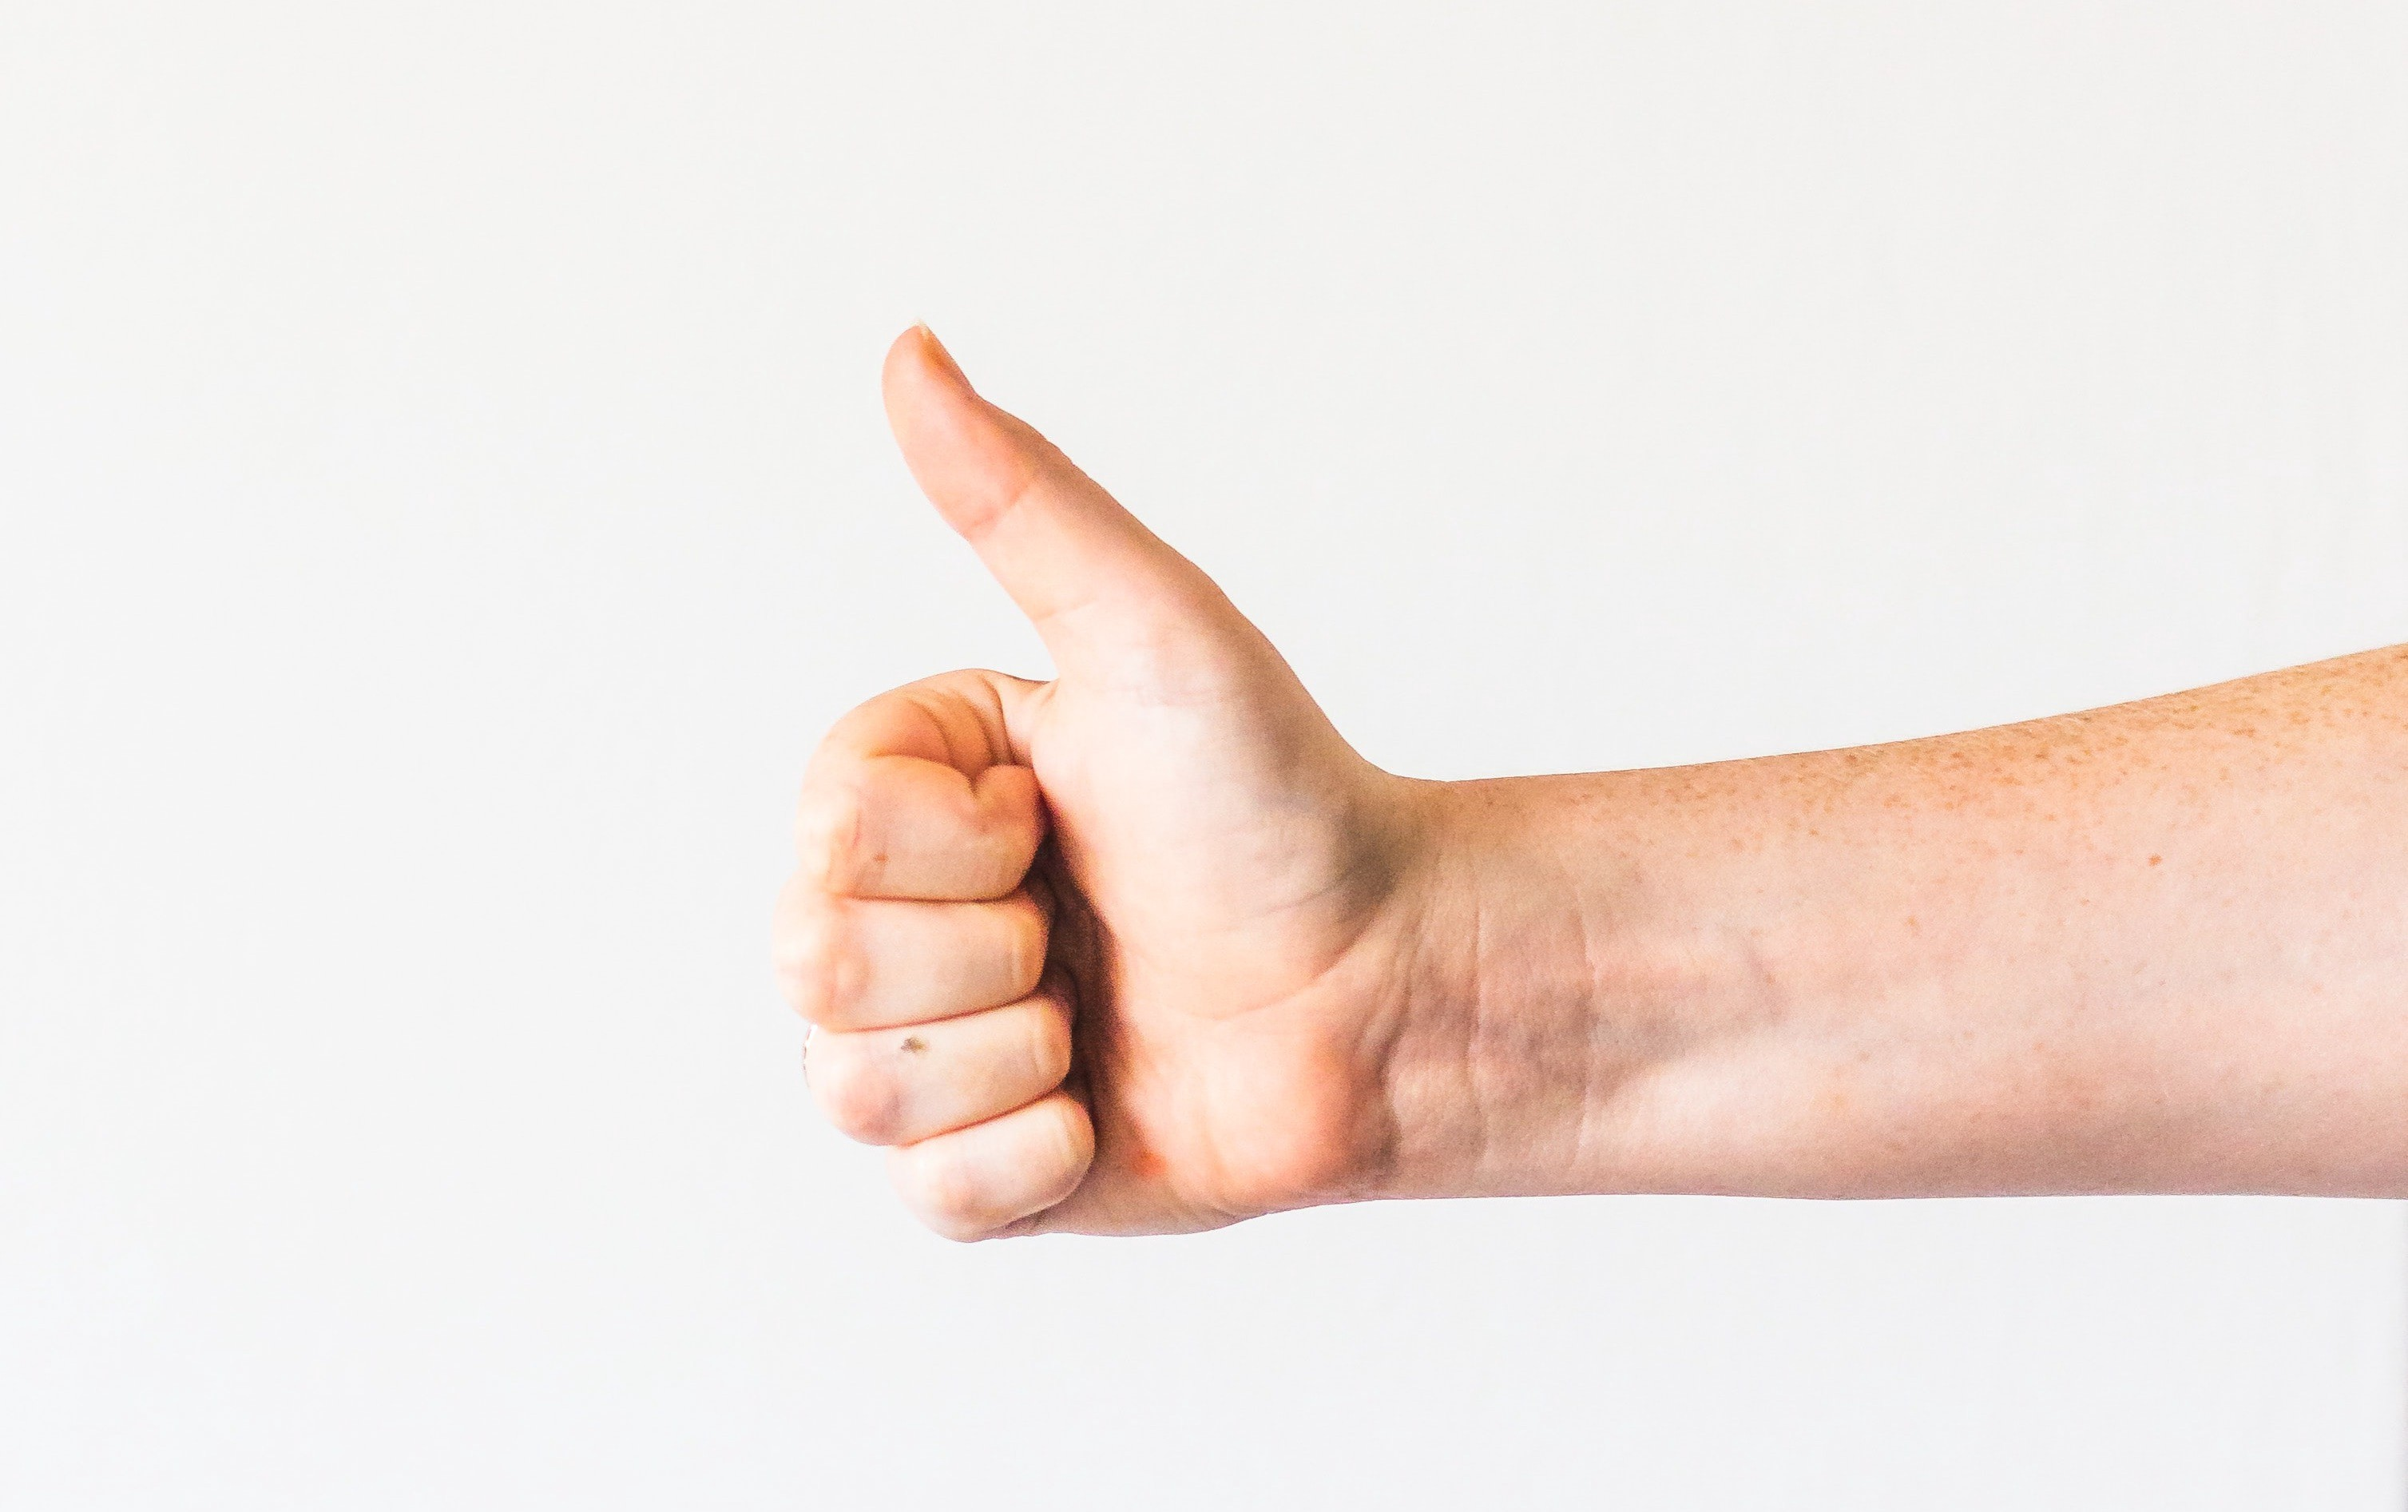 Thumbs up expression